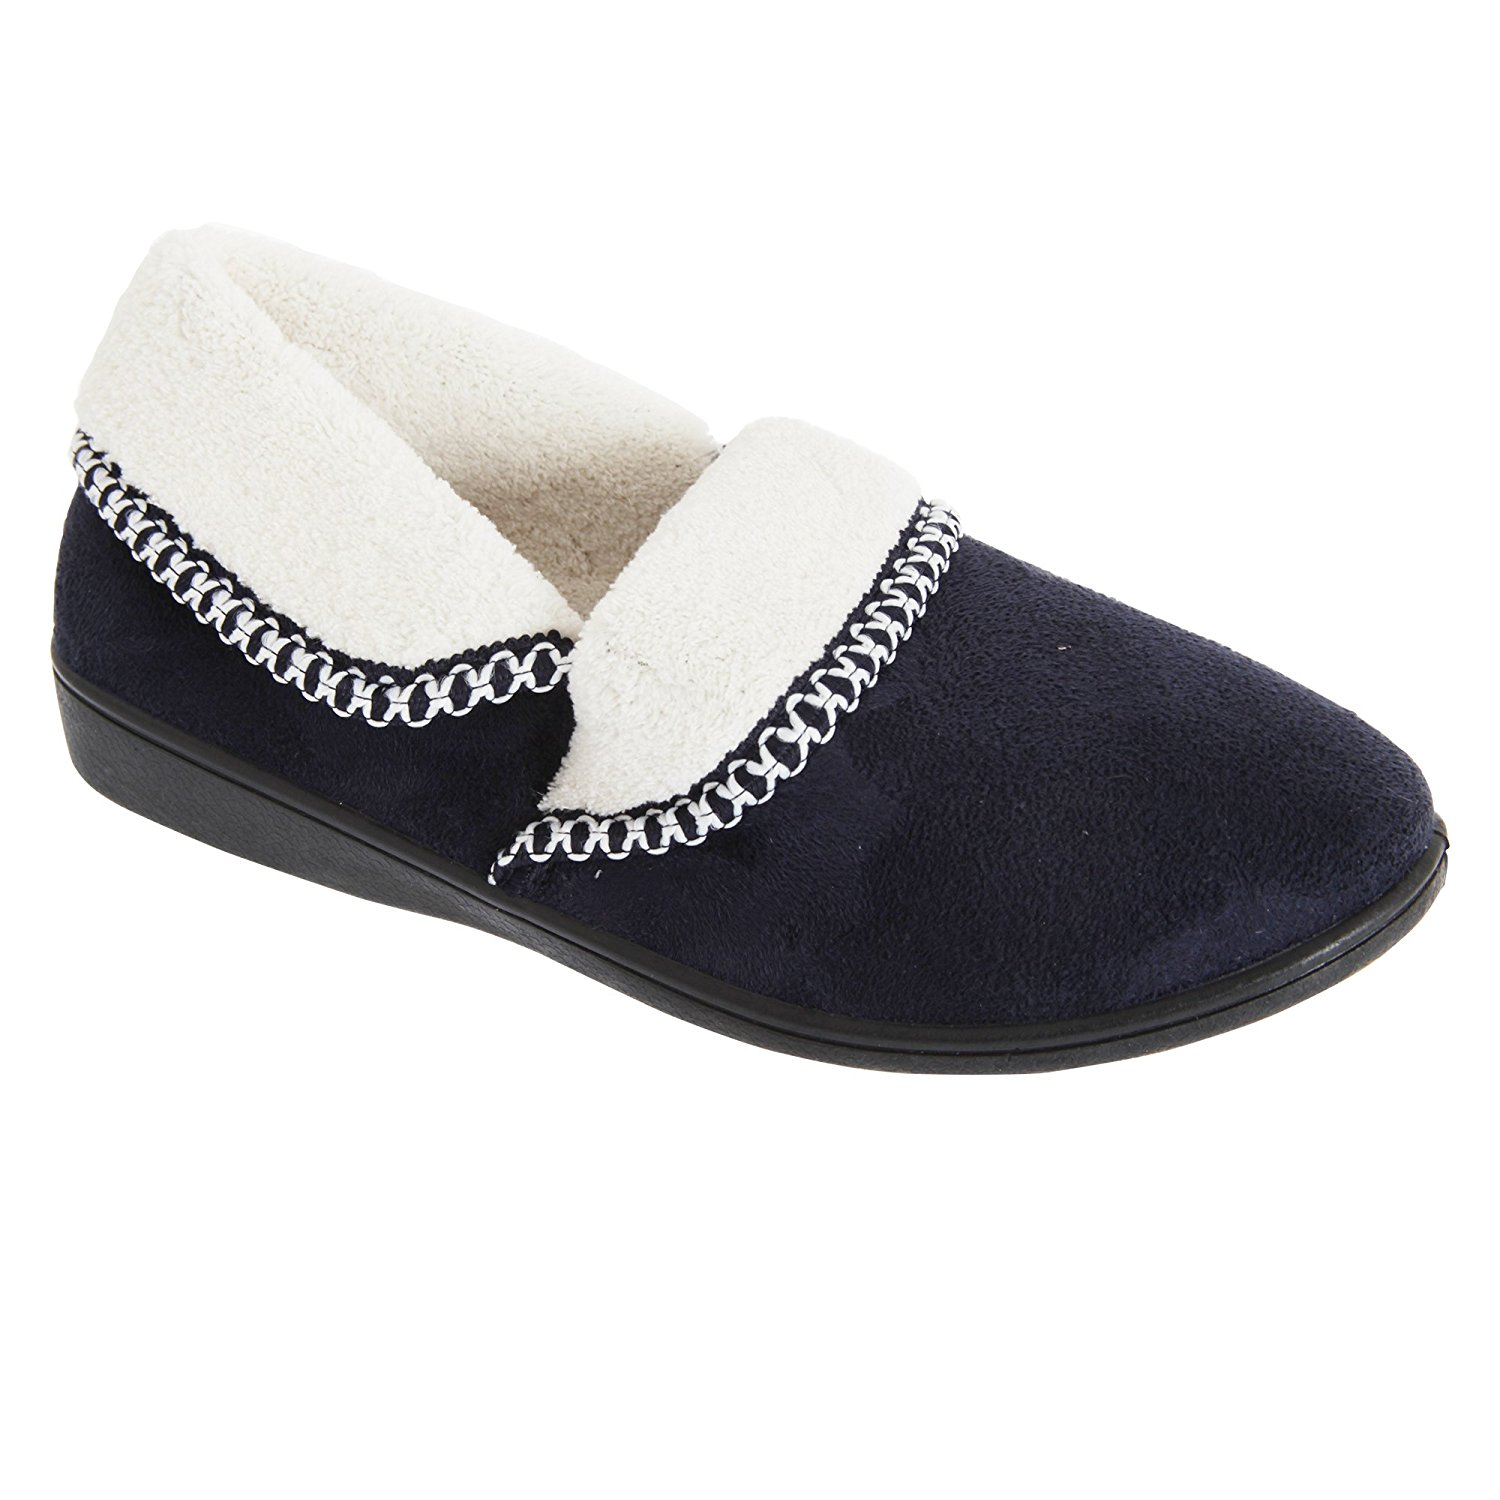 e854060847b Get Quotations · Slumberzzz Womens Ladies Soft Thermal Slippers